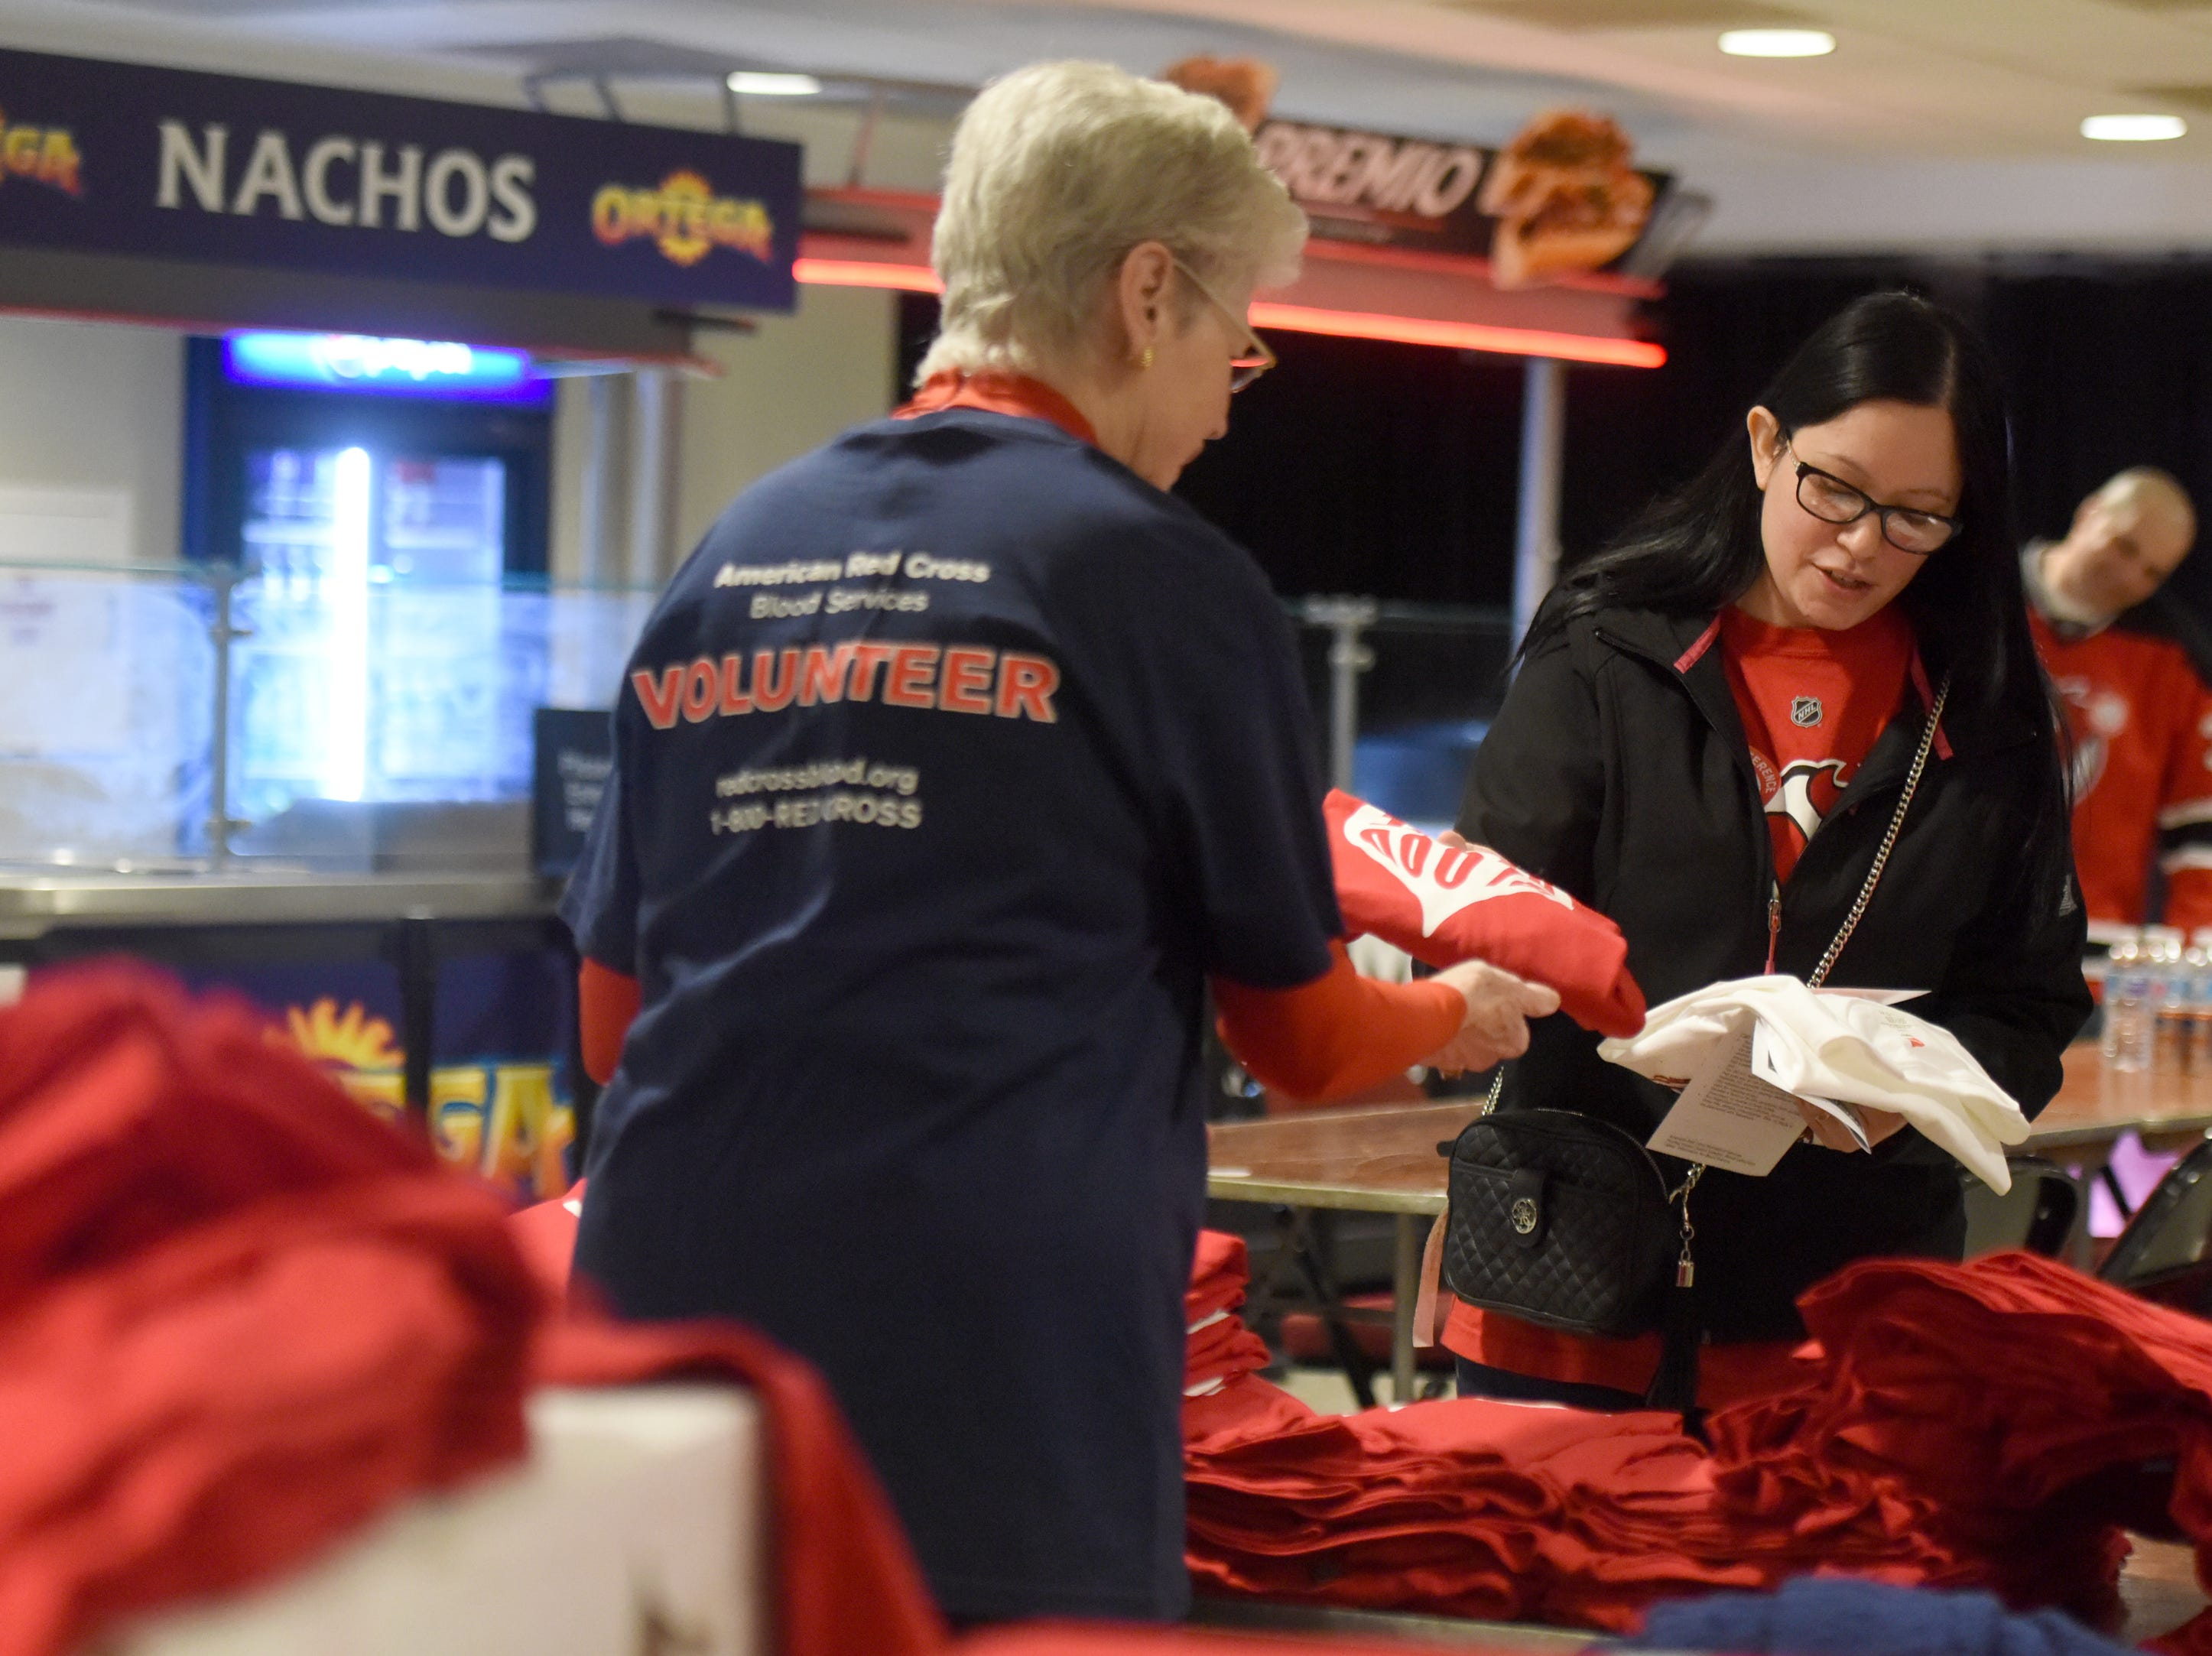 The New Jersey Devils and RWJBarnabas Health hosted their third annual blood drive in coordination with the American Red Cross on Sunday, March 10, 2019 at the Prudential Center in Newark. Blood donors received free t-shirts and a voucher for Devils tickets.